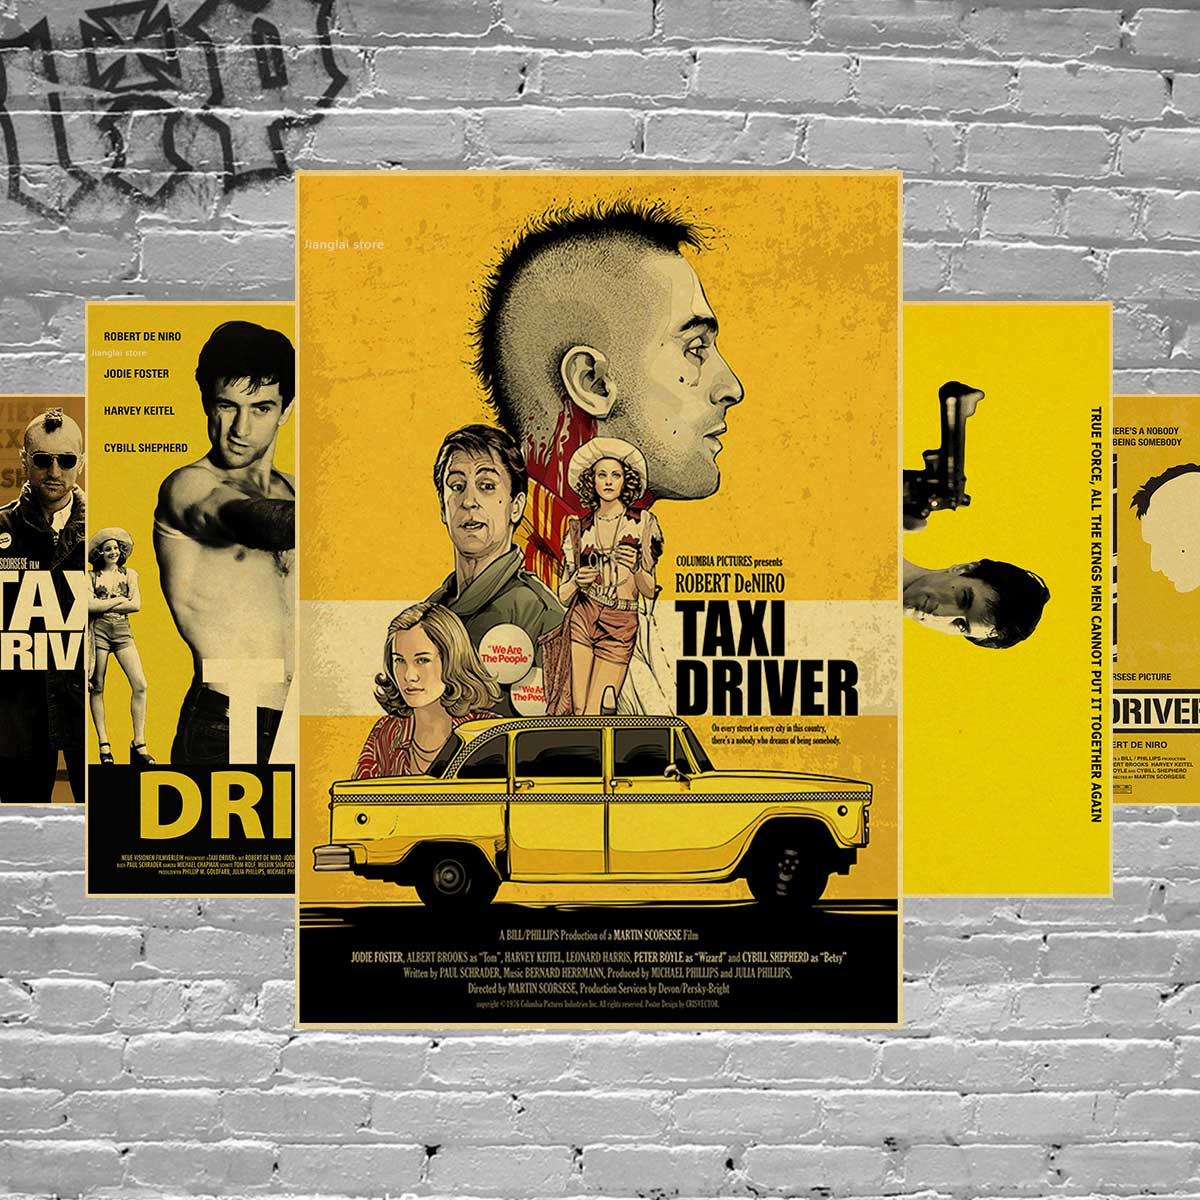 Taxi Driver Wallpapers - Wallpaper Cave  |Anime Taxi Driver